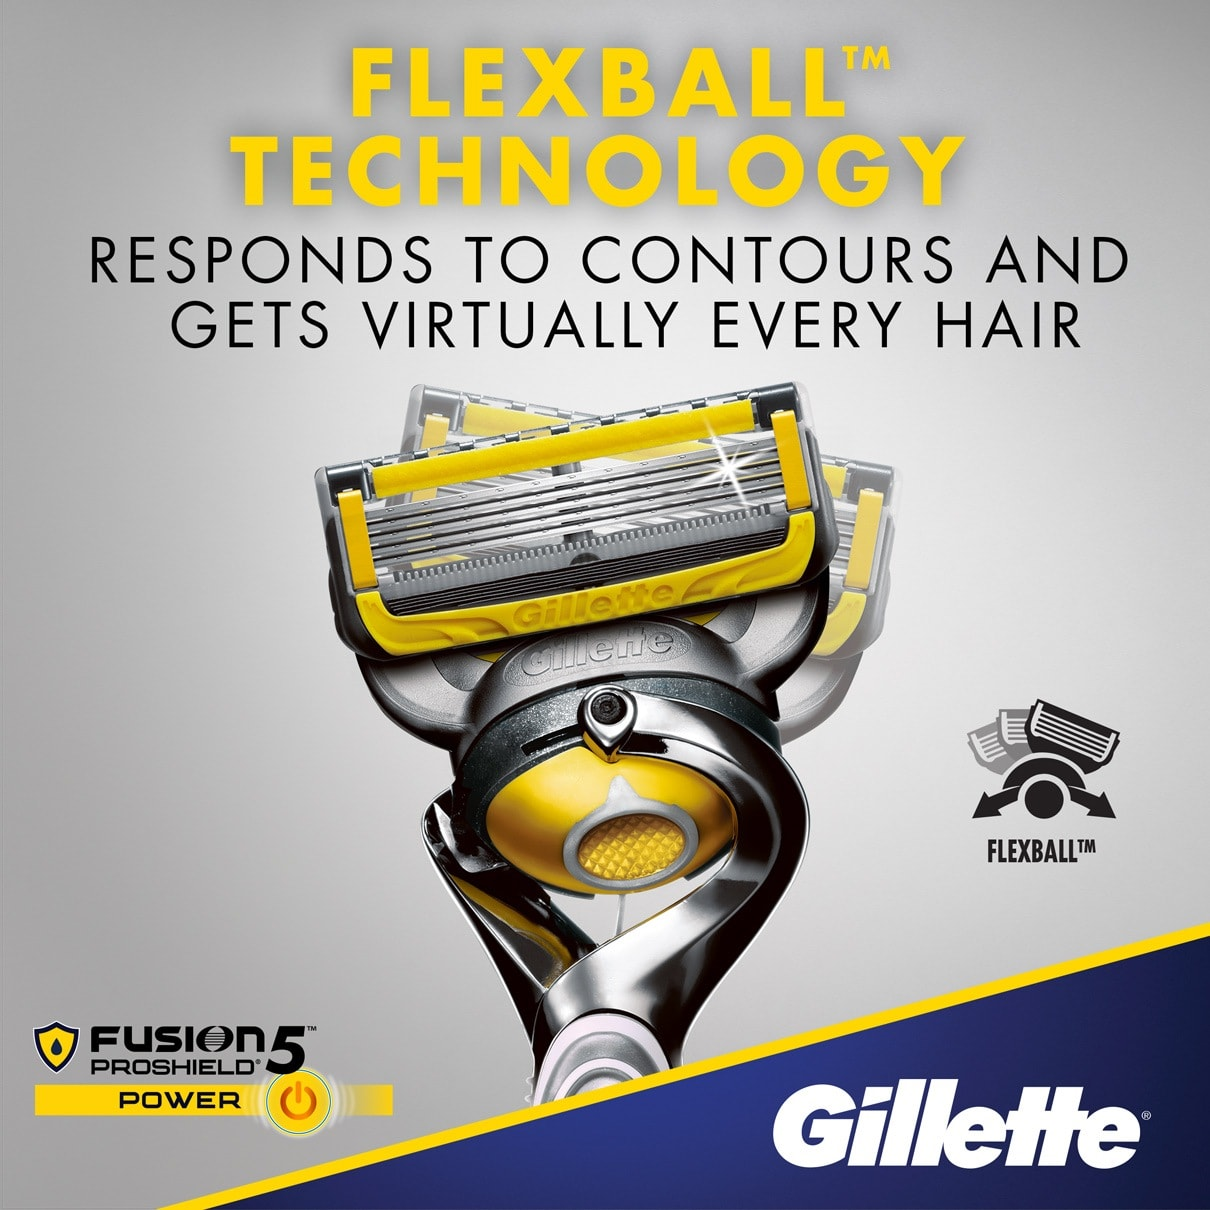 Flexball technology responds to contours and gets virtually every hair